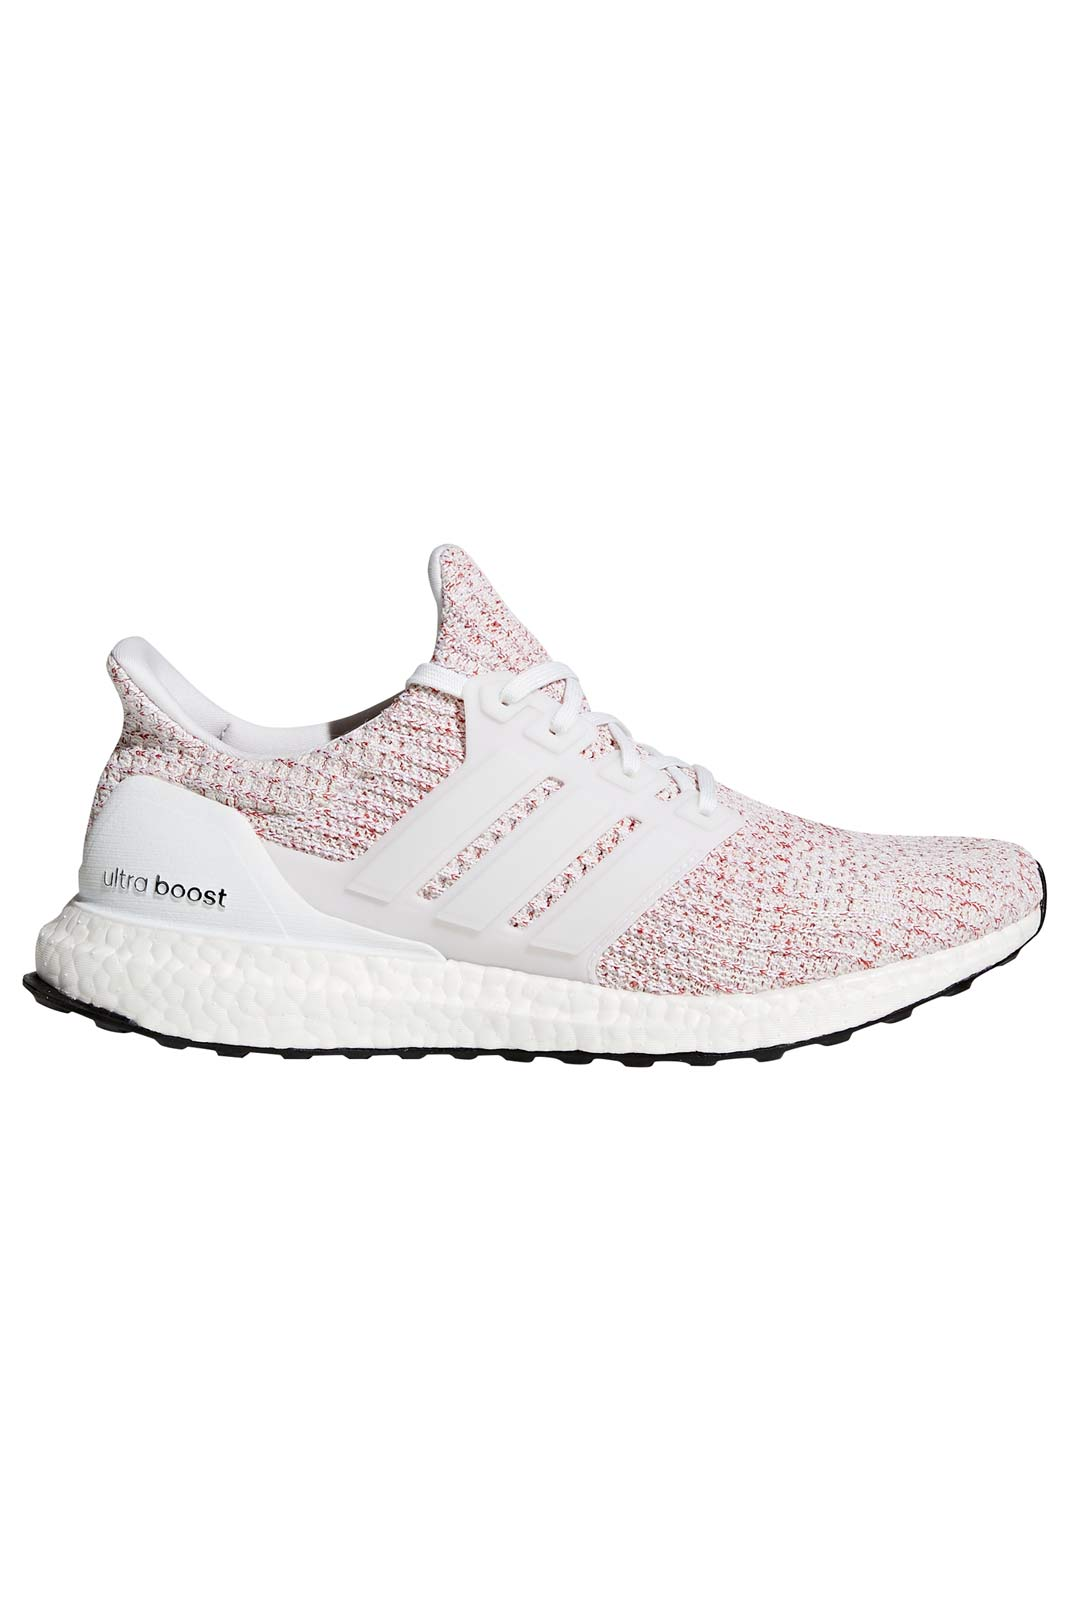 adidas ultra boost 4.0 mens sale